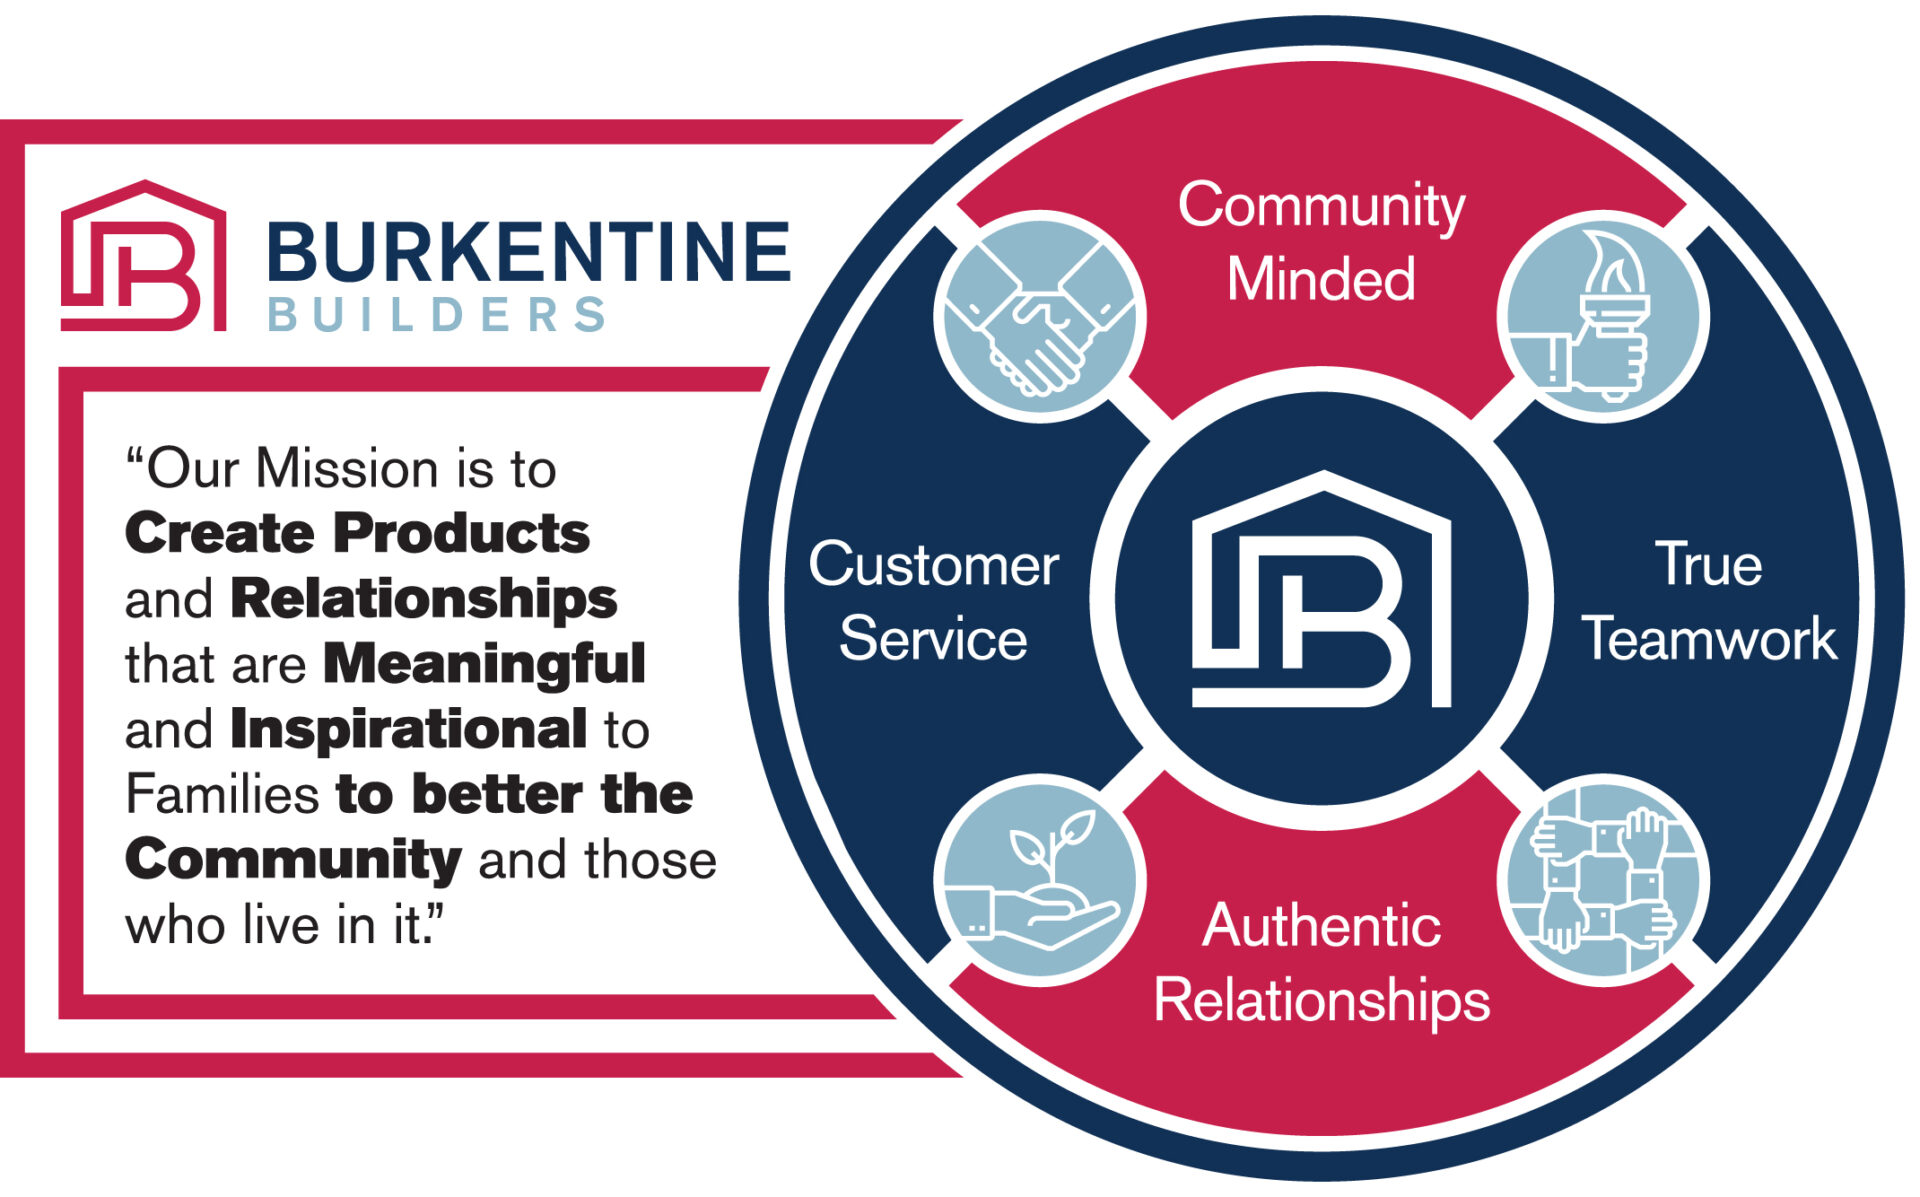 Burkentine Builders' Mission Statement